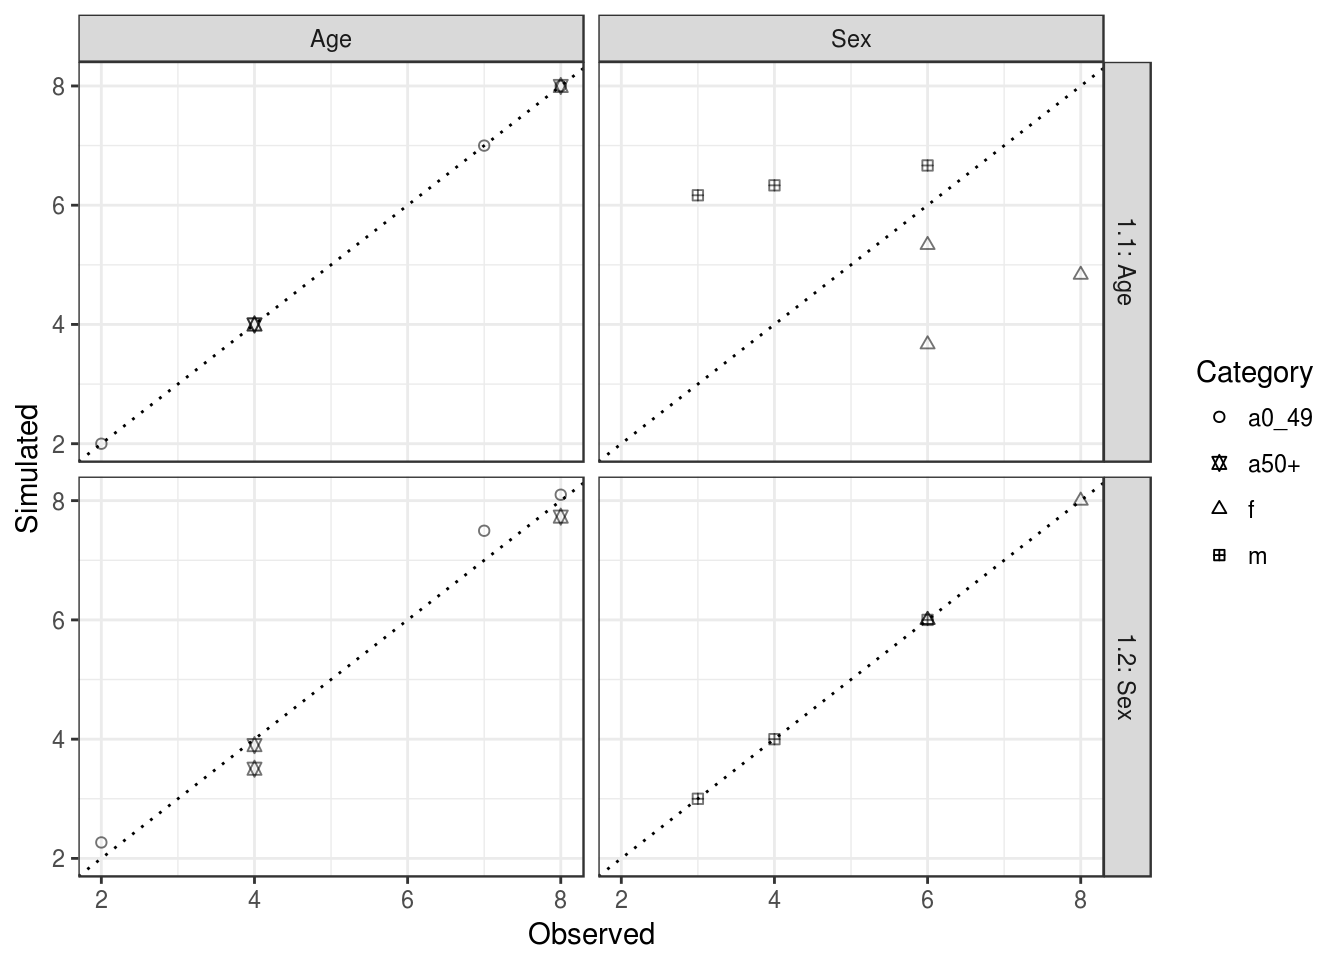 Fit between observed and simulated values for age and sex categories (column facets) after constraining a first time by age and sex constraints (iterations 1.1 and 1.2, plot rows). The dotted line in each plot represents perfect fit between the simulated and observed cell values. The overall fit in each case would be found by combining the left and right-hand plots. Each symbol corresponds to a category and each category has a couple (observed, simulated) for each zone.